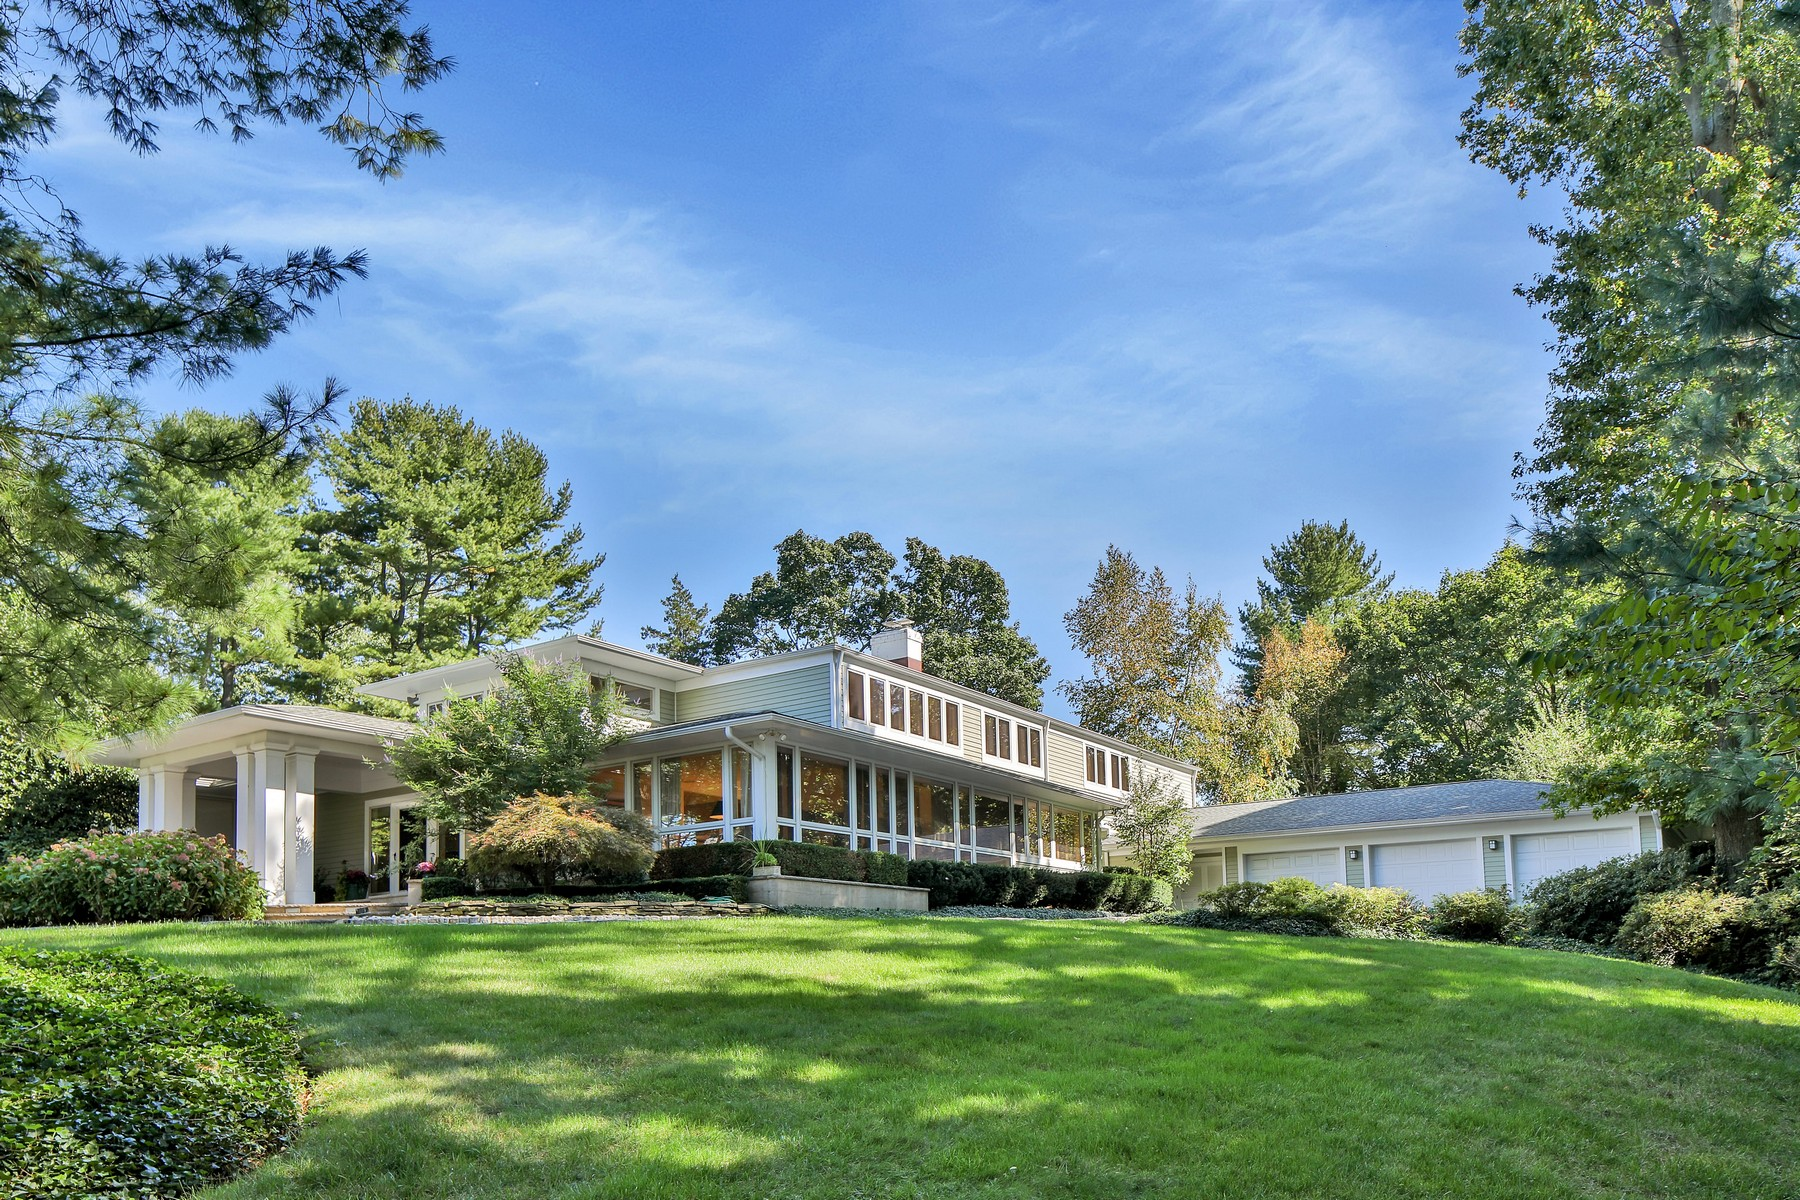 Single Family Home for Sale at Masterpiece 143 Ridge Rd Rumson, New Jersey, 07760 United States